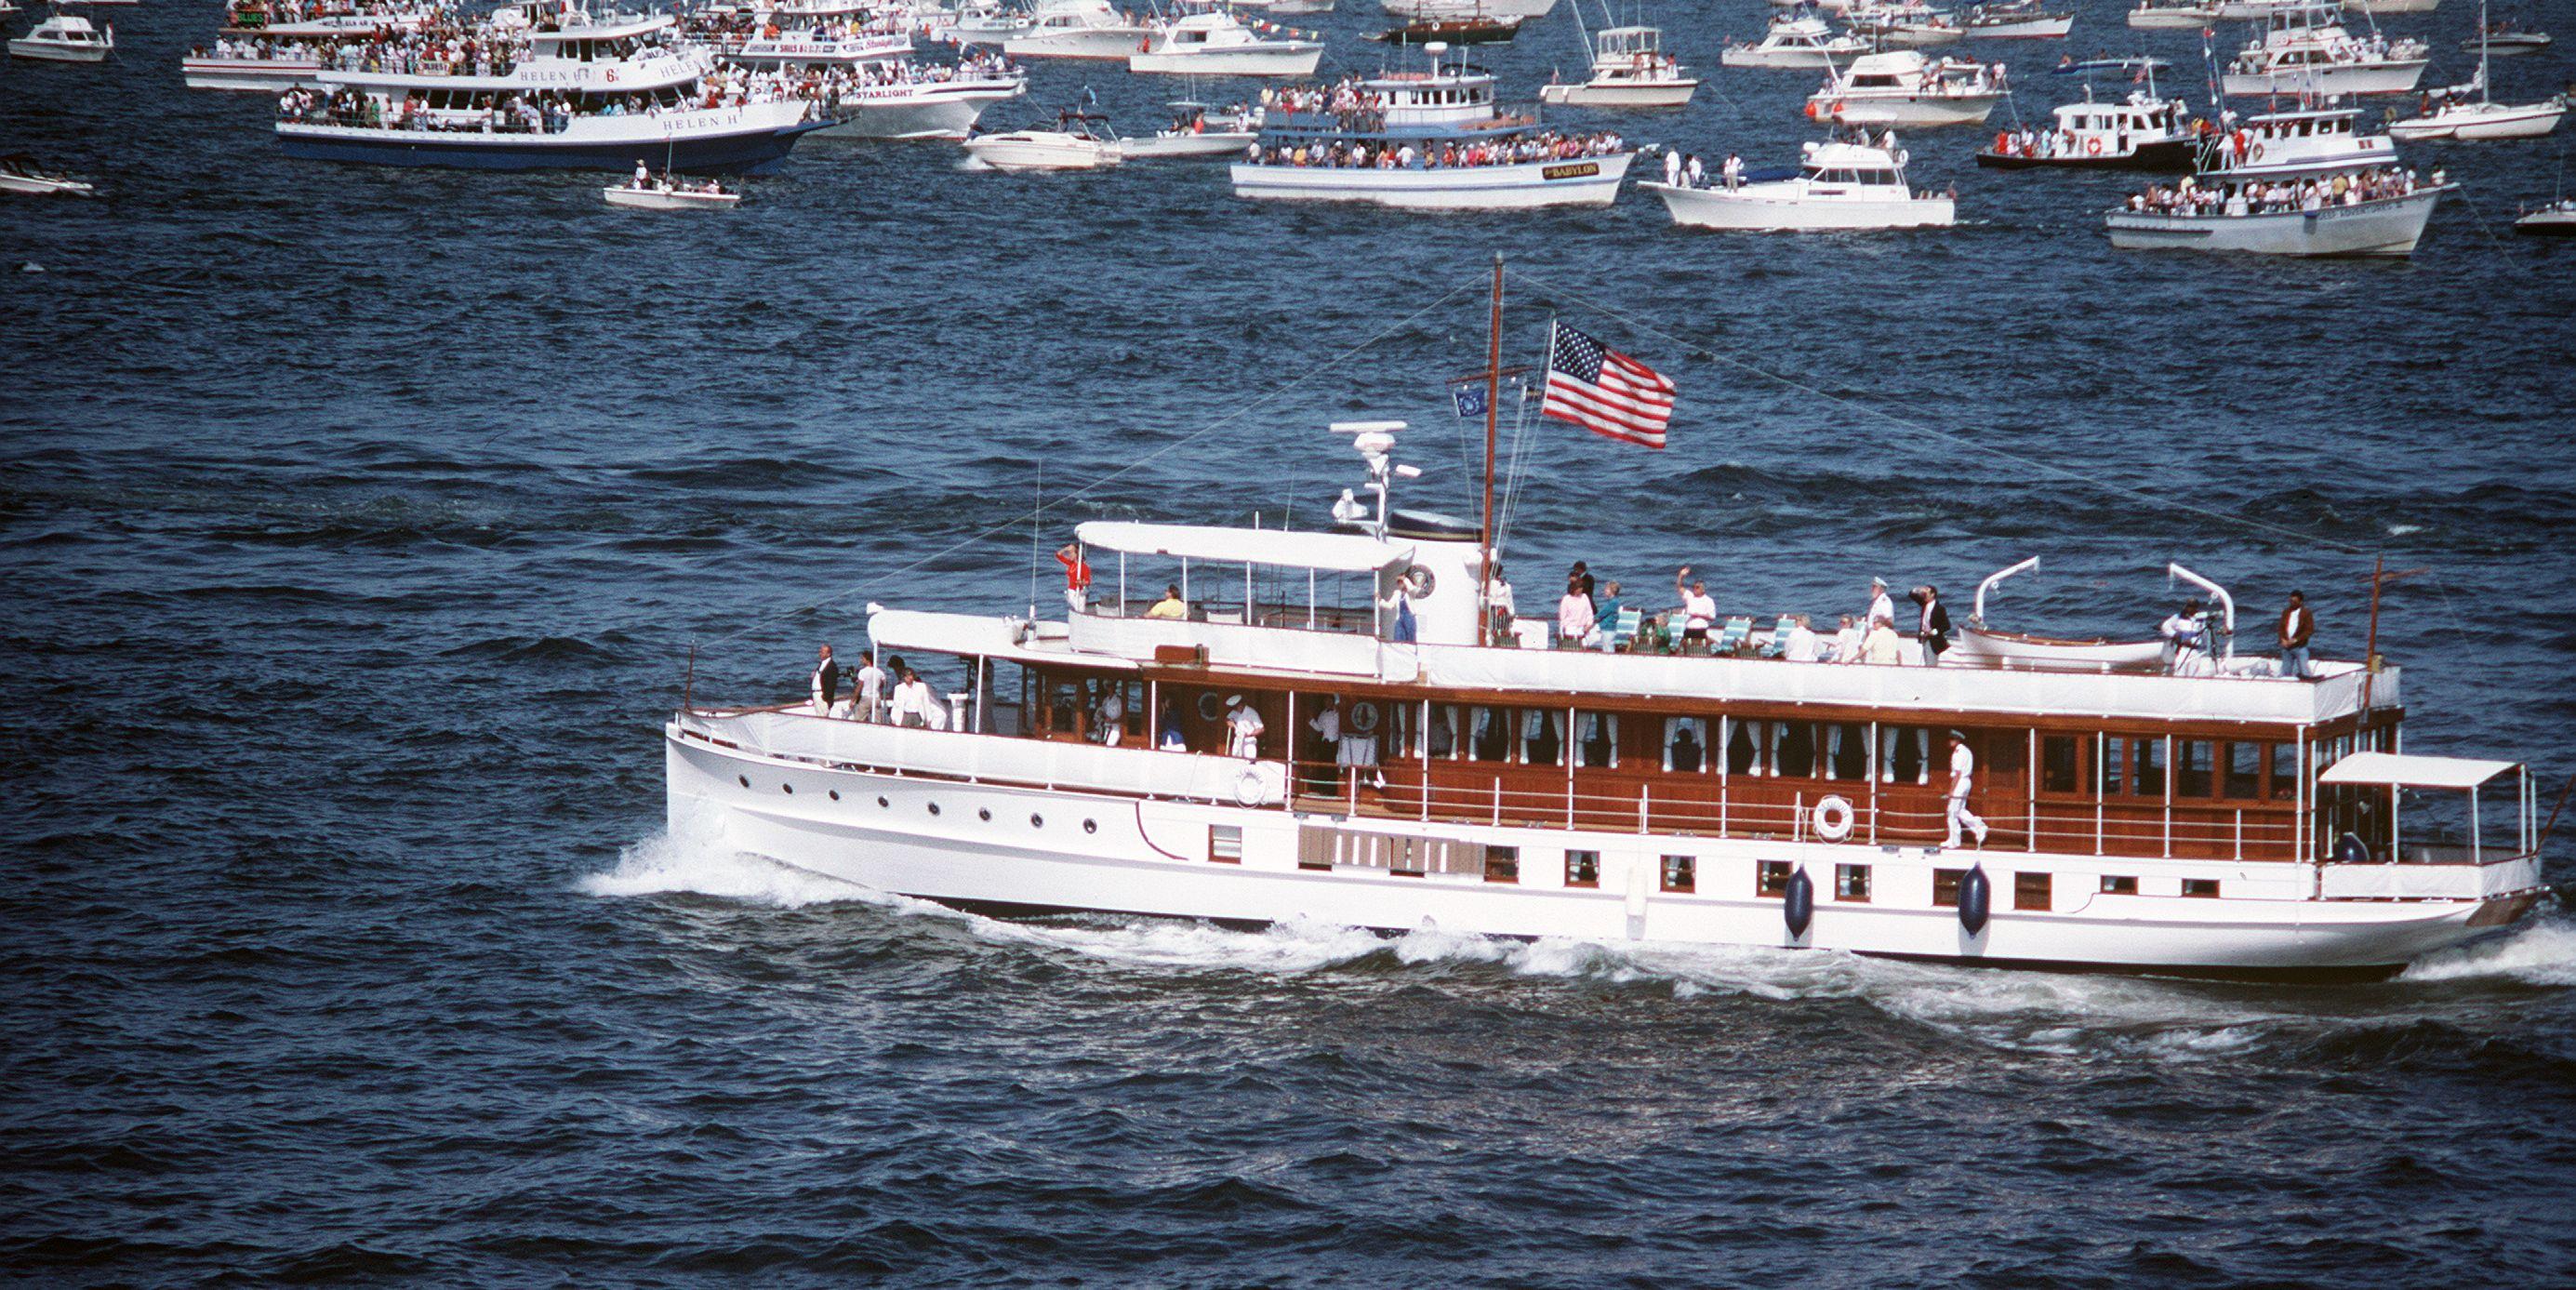 USS Sequoia Presidential yacht